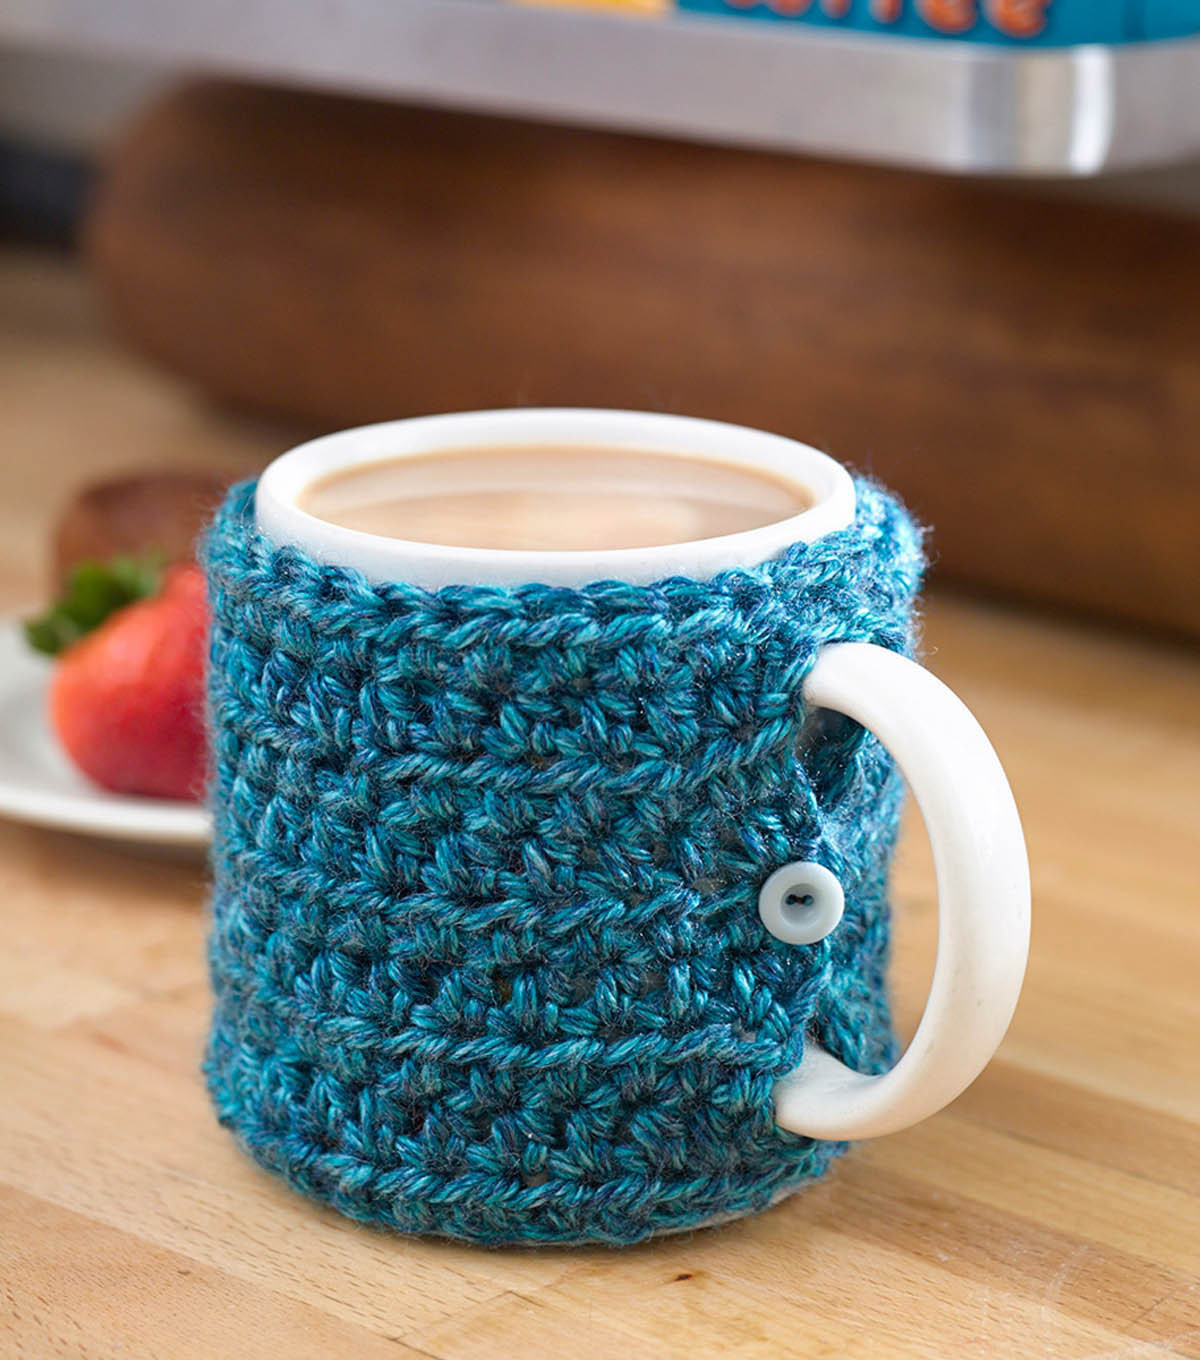 Crochet Coffee Cup Cozy Best Of Craftdrawer Crafts Free Easy to Crochet Mug Cozy Patterns Of Crochet Coffee Cup Cozy Inspirational Crochet Coffee Cup Cozy Pattern Pdf Download Coffee Cup Cozy